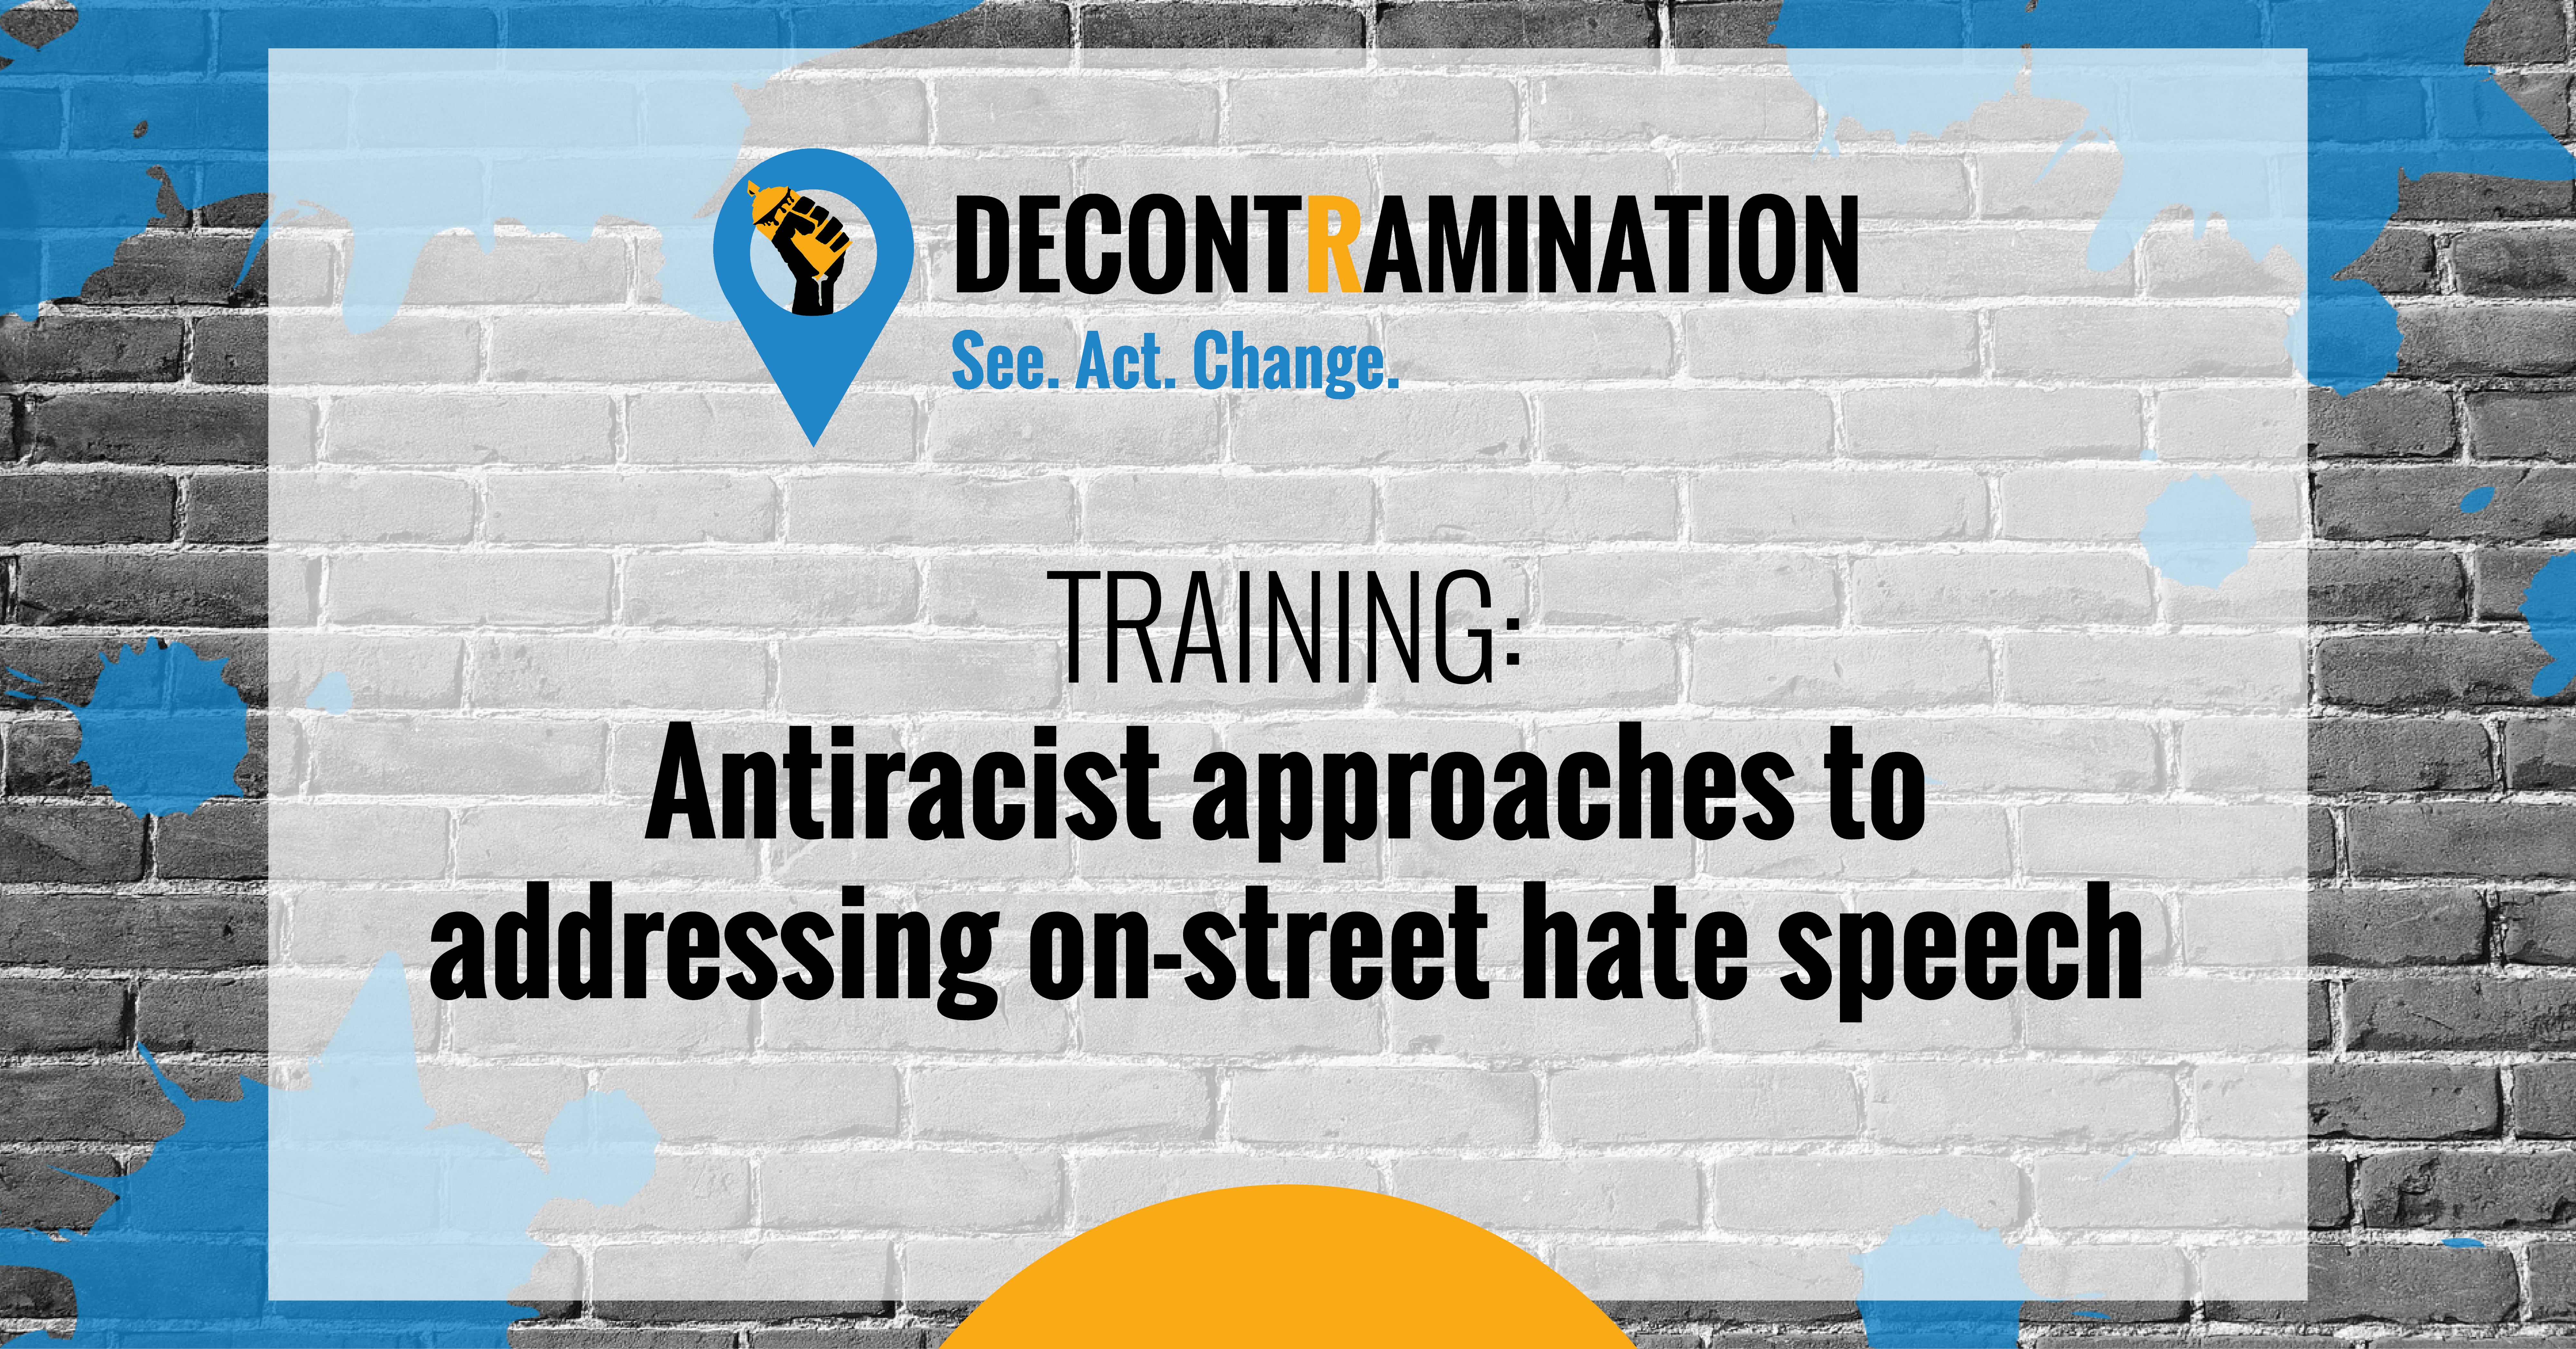 DECONTRAMINATION TRAINING DUBLIN: Antiracist approaches to addressing on-street hate speech